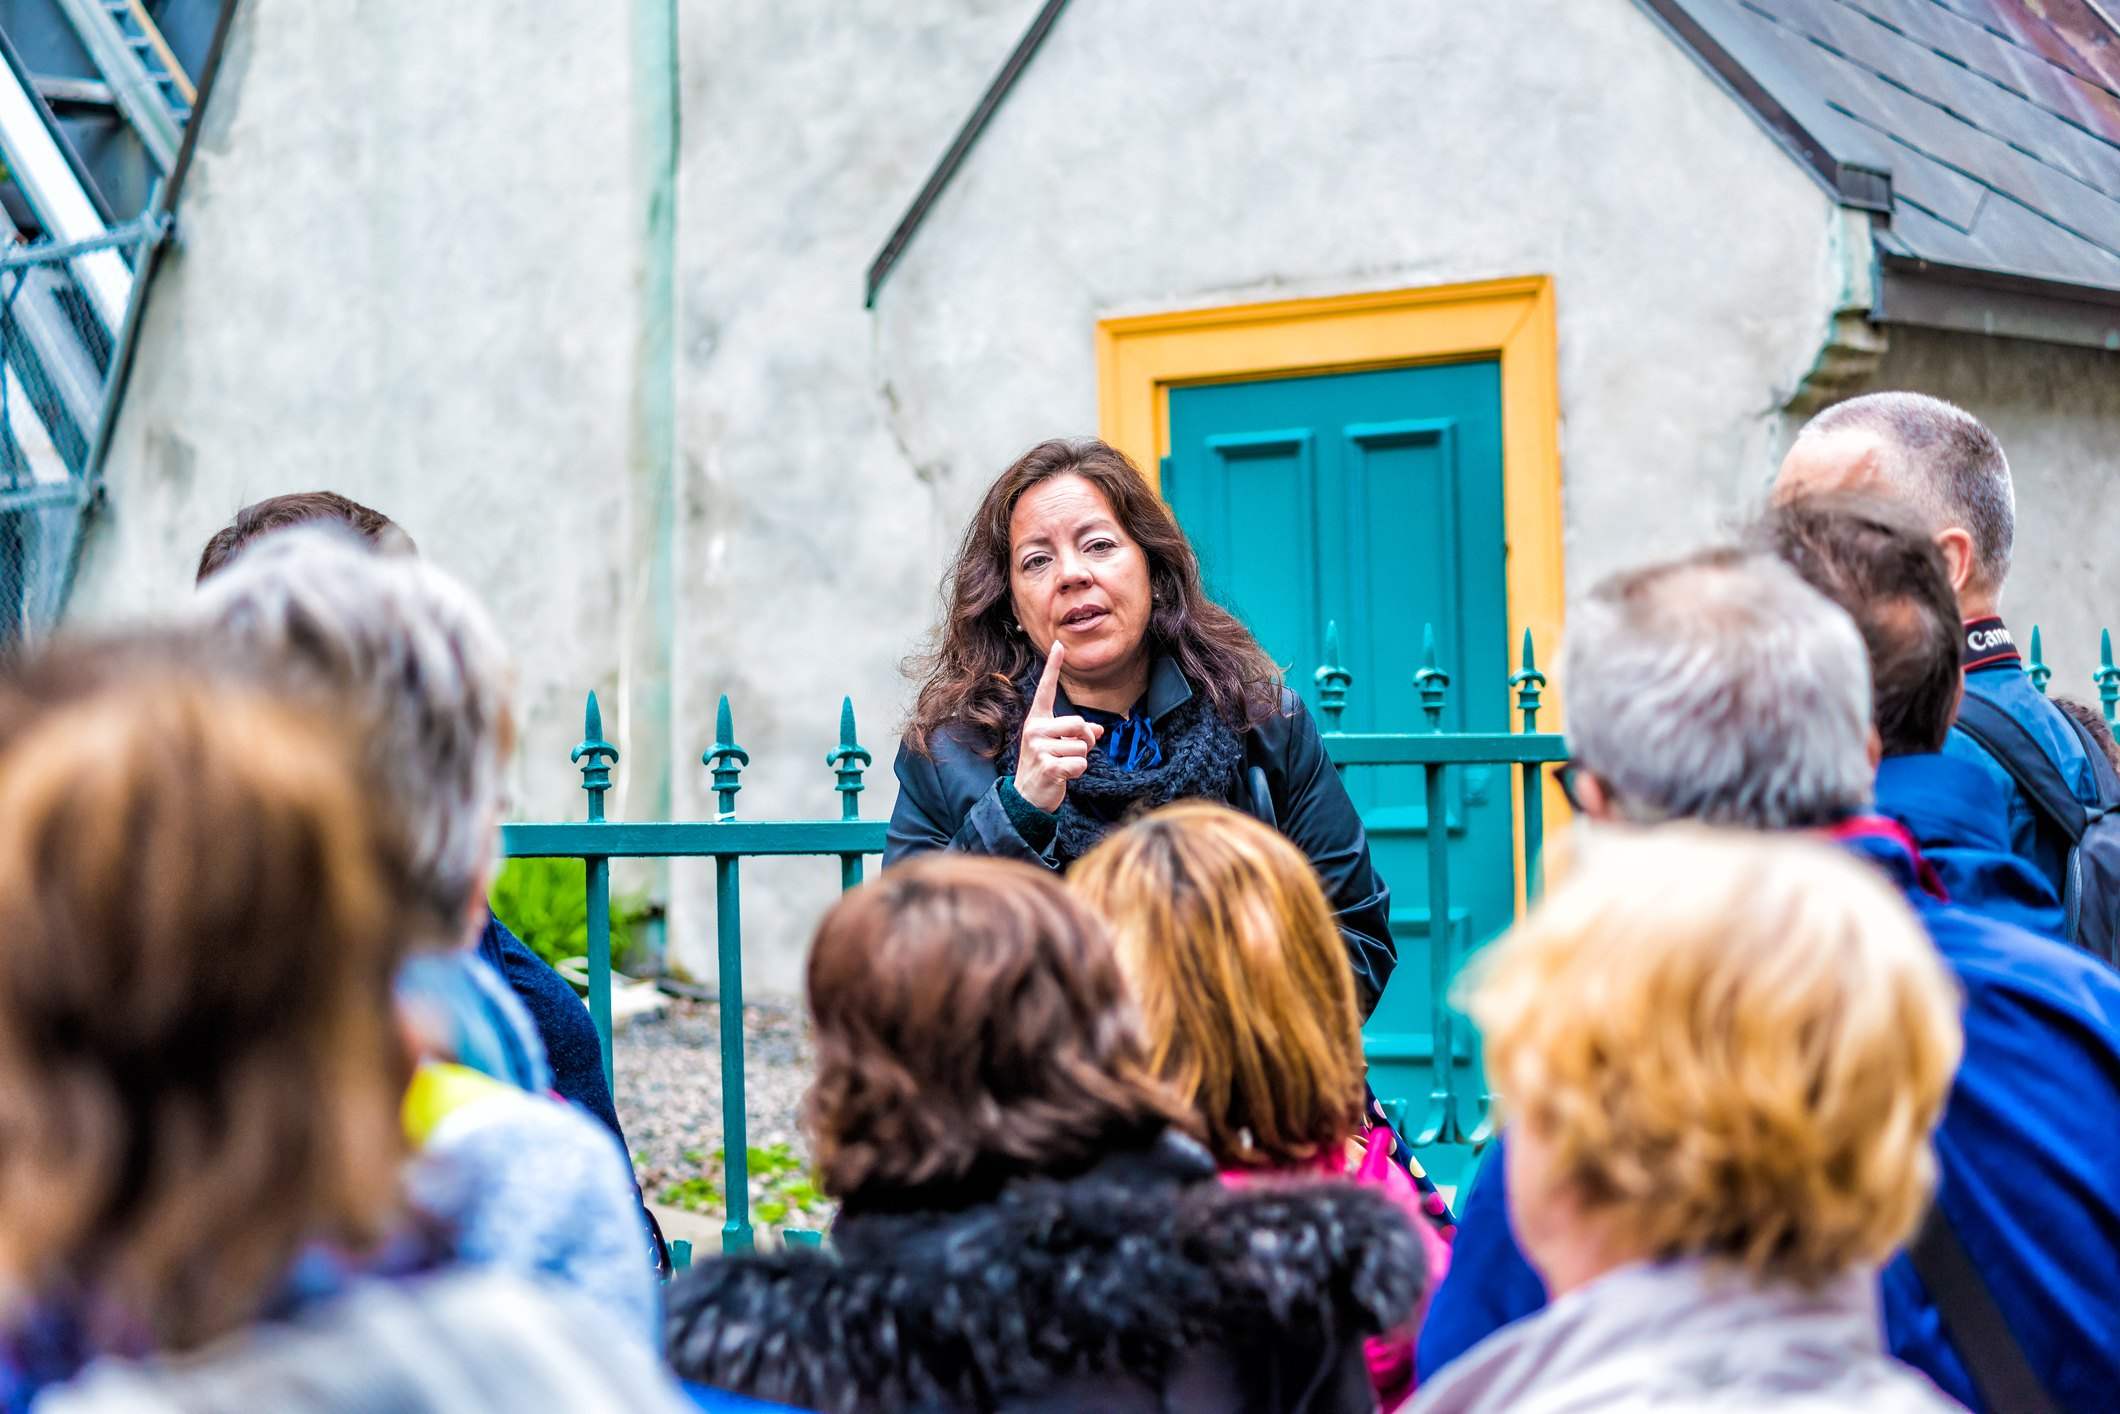 Tour guide speaking to group in front of blue door